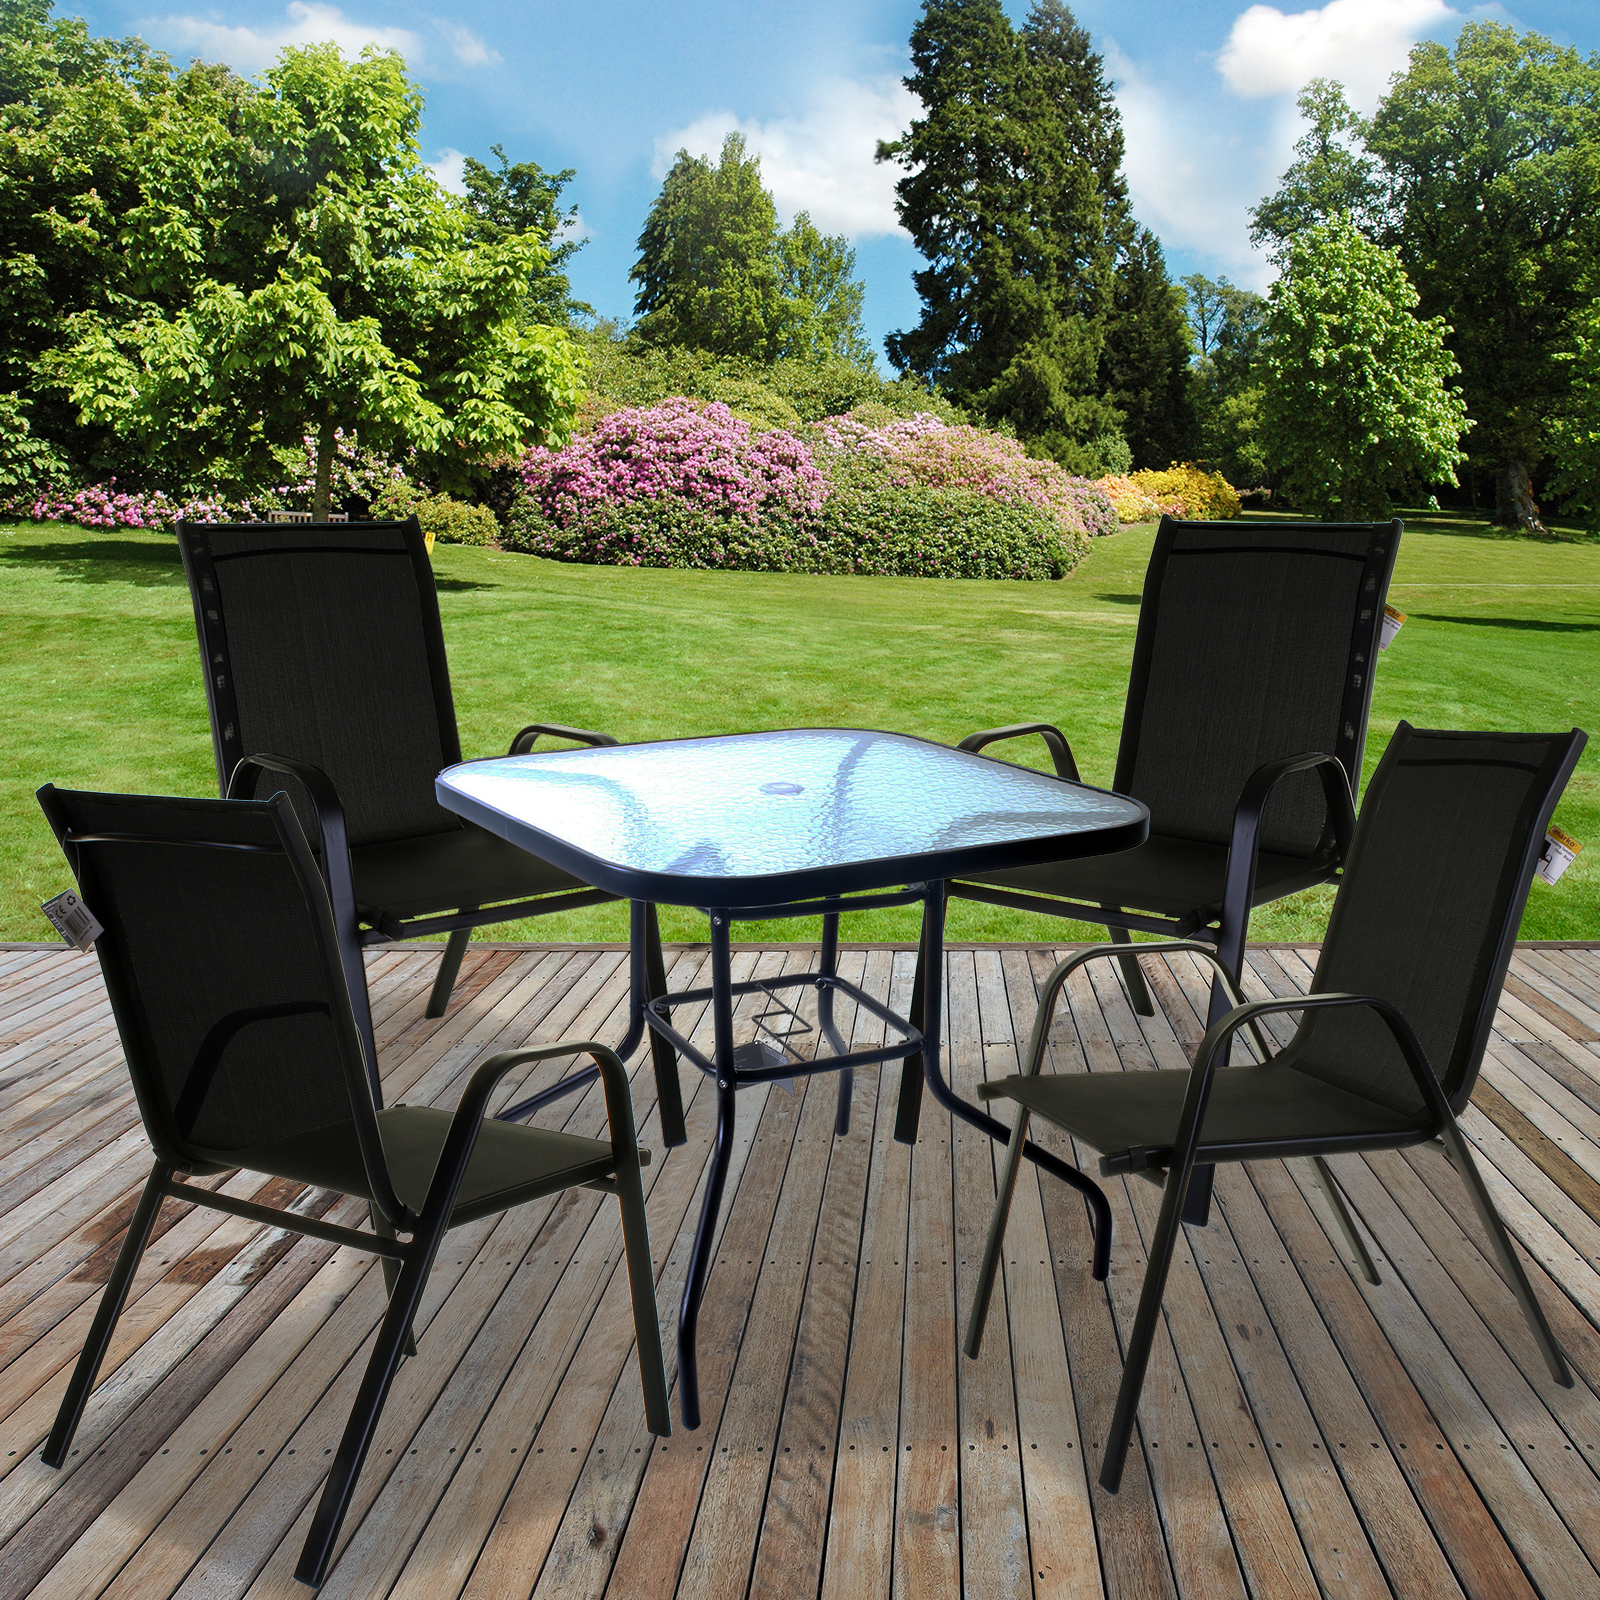 Details about OUTDOOR GARDEN PATIO FURNITURE SETS GLASS TABLES STACKING  CHAIRS PARASOL BASE